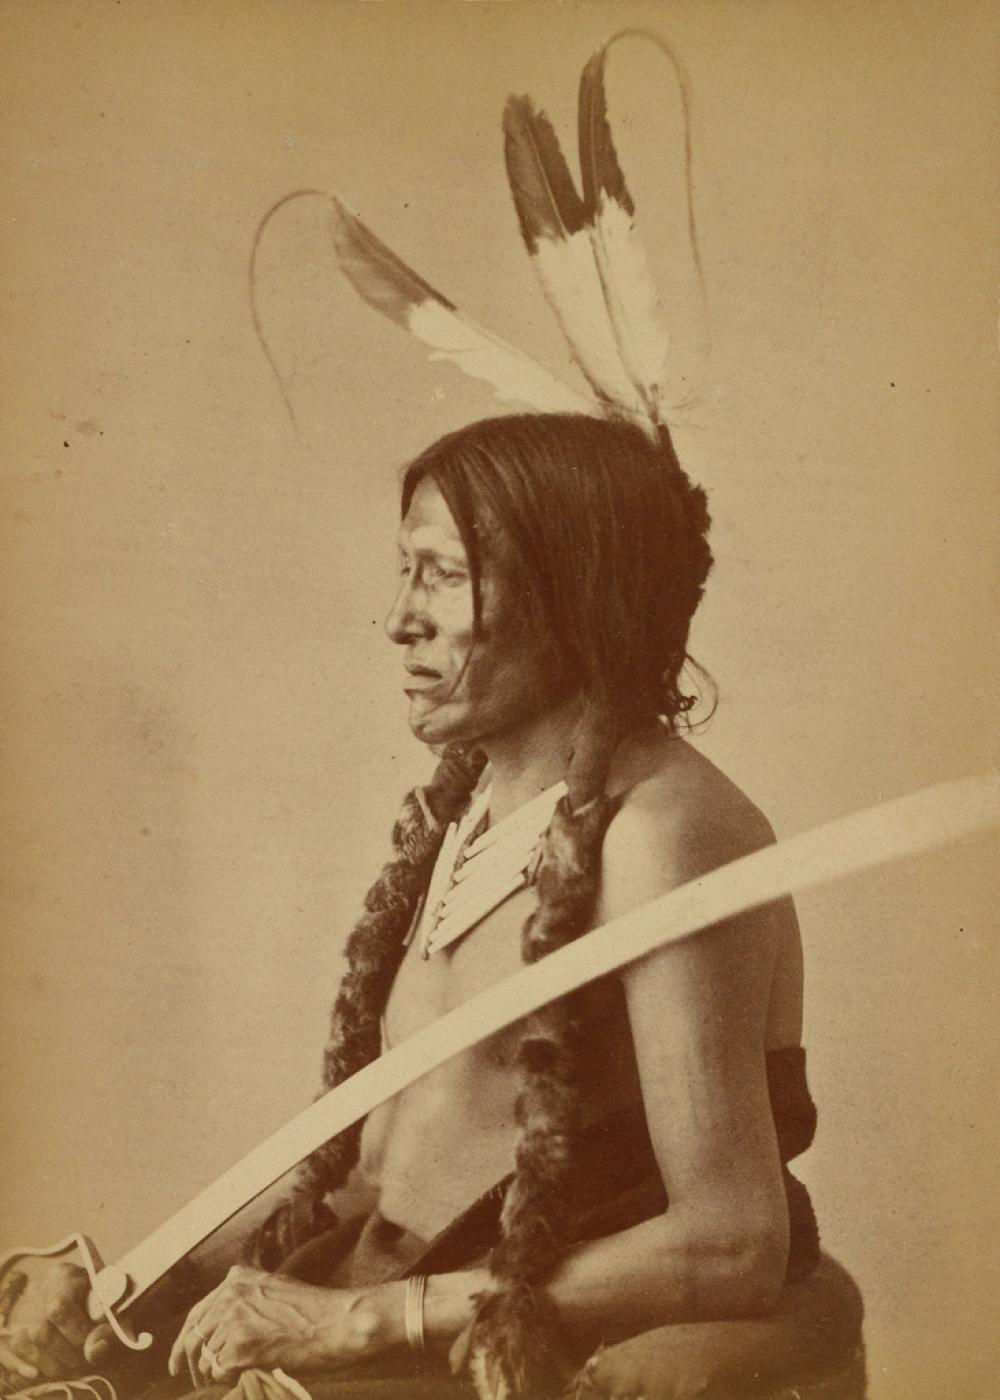 ALEXANDER GARDNER (1821-1882) Suite of 15 photographs of Sioux Delegation members who visited Washington, D.C.